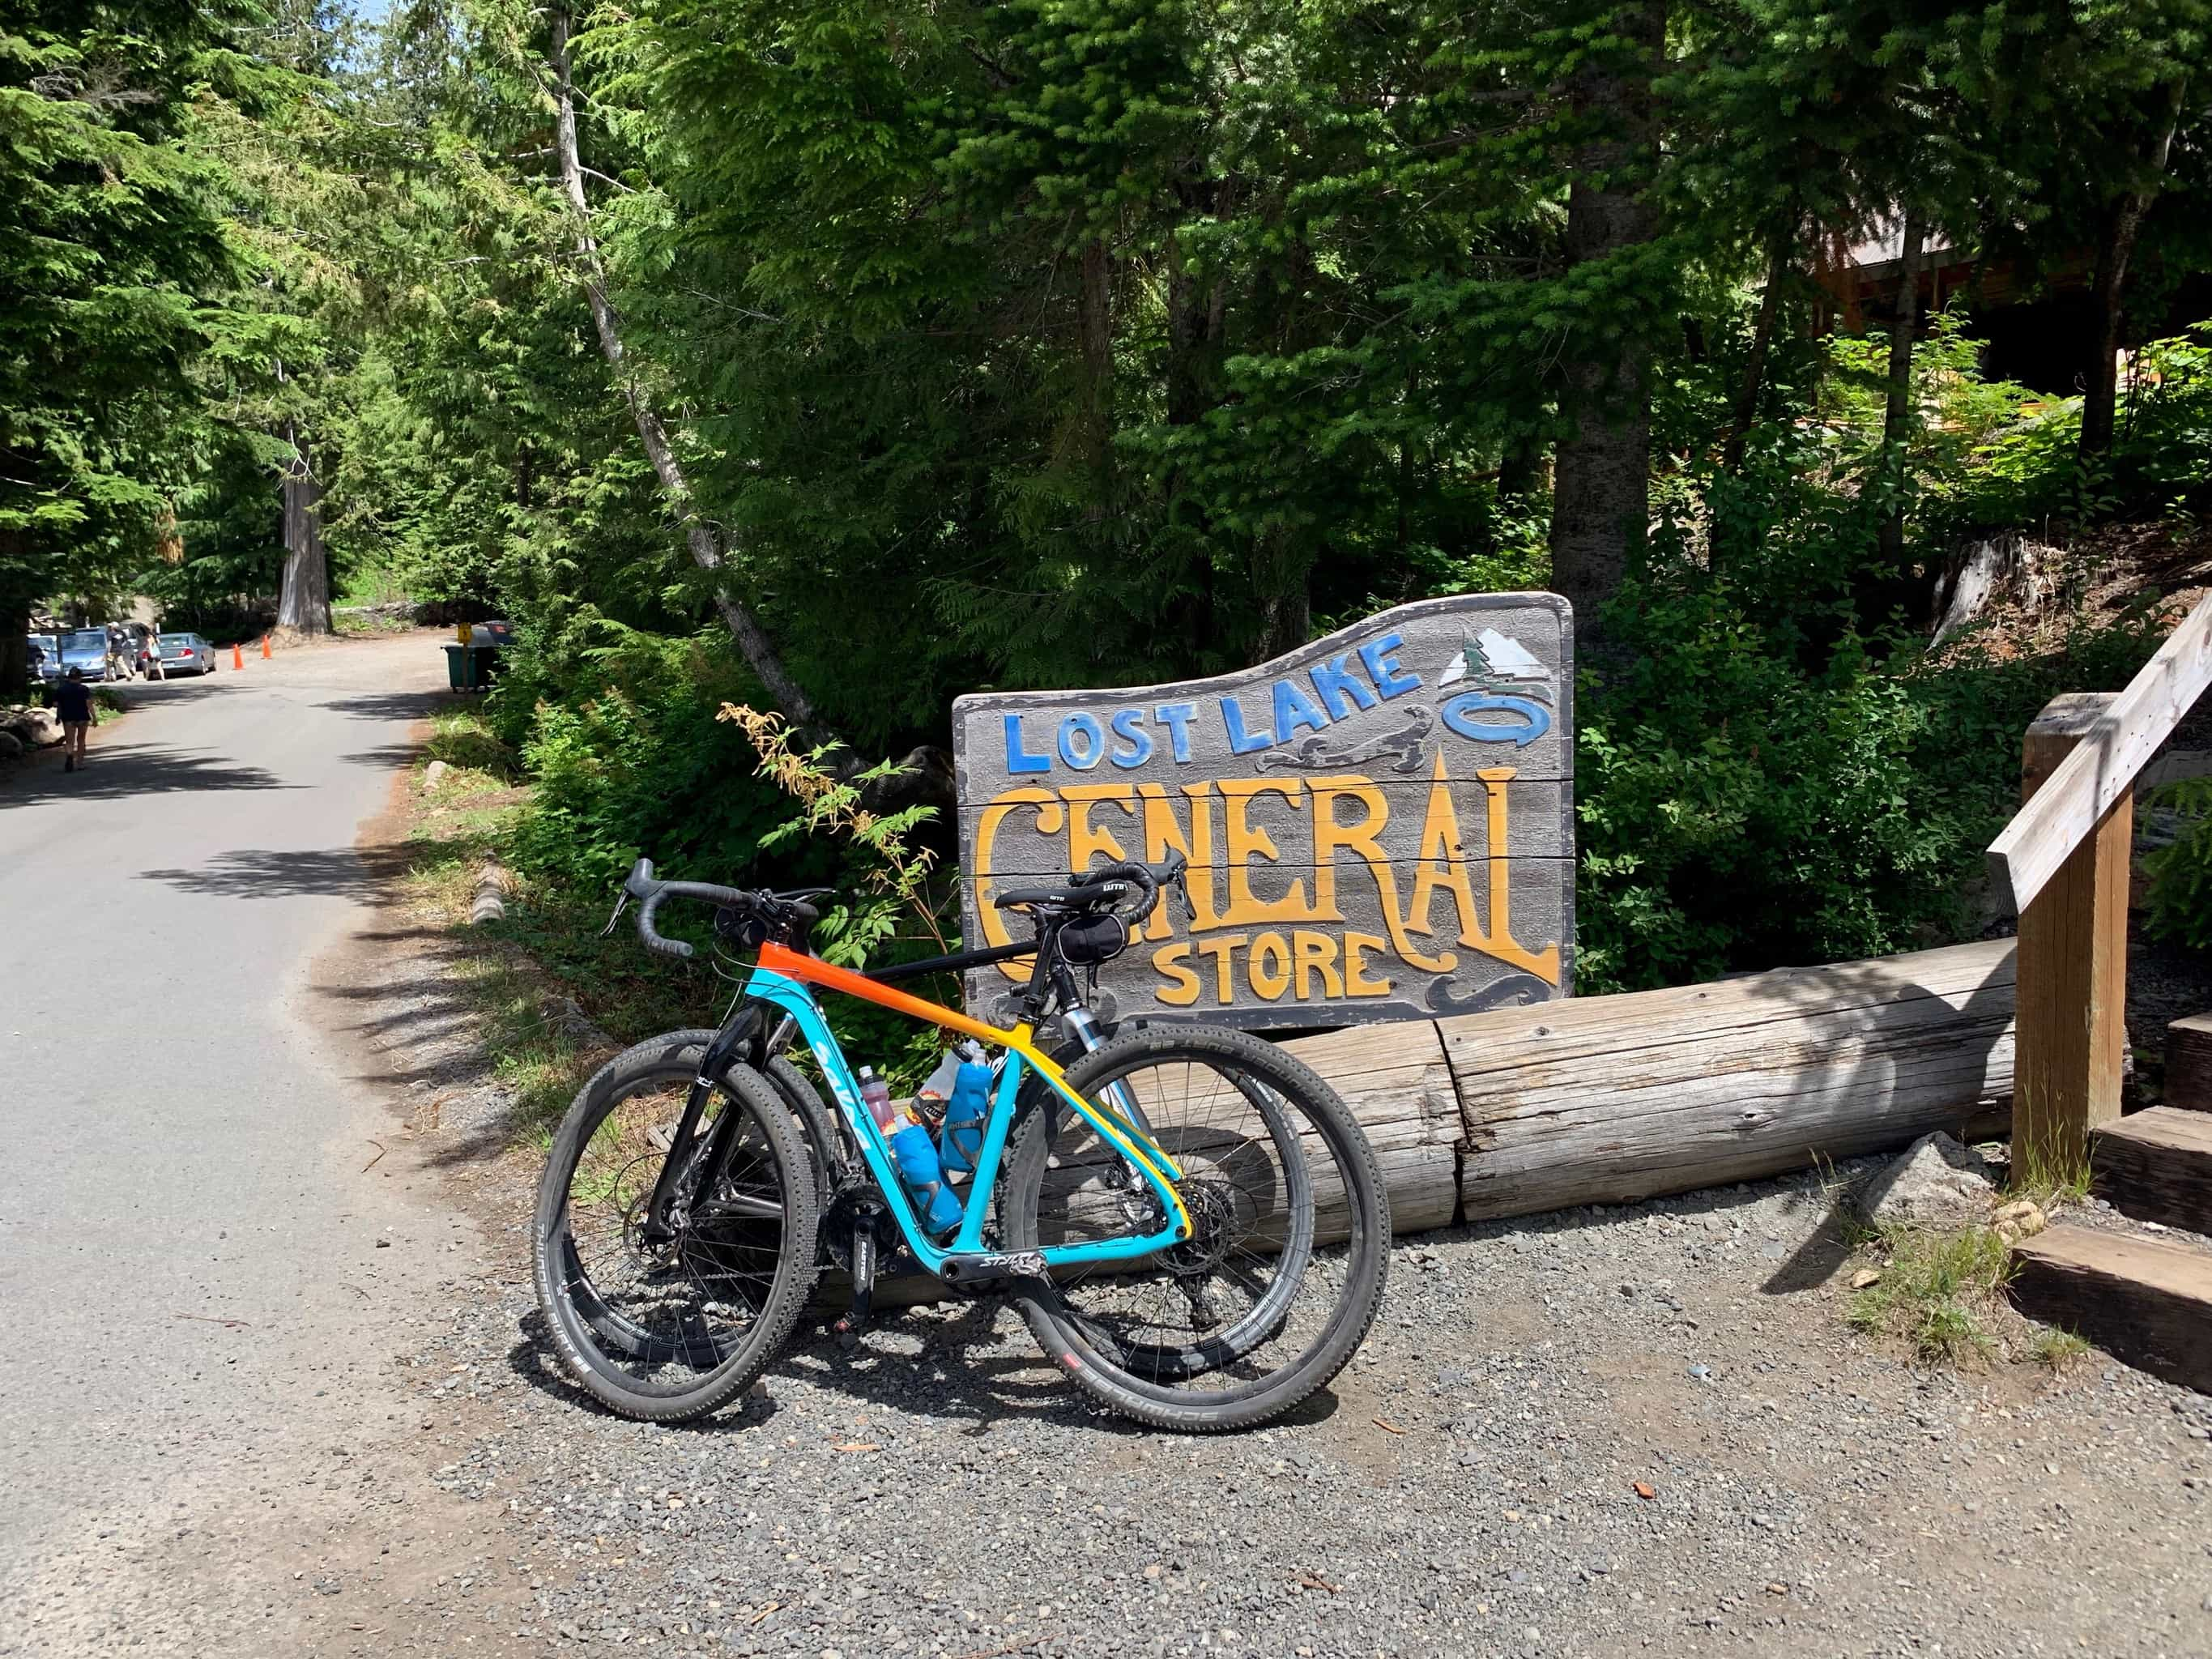 Gravel bikes parked near sign for Lost Lake General store.